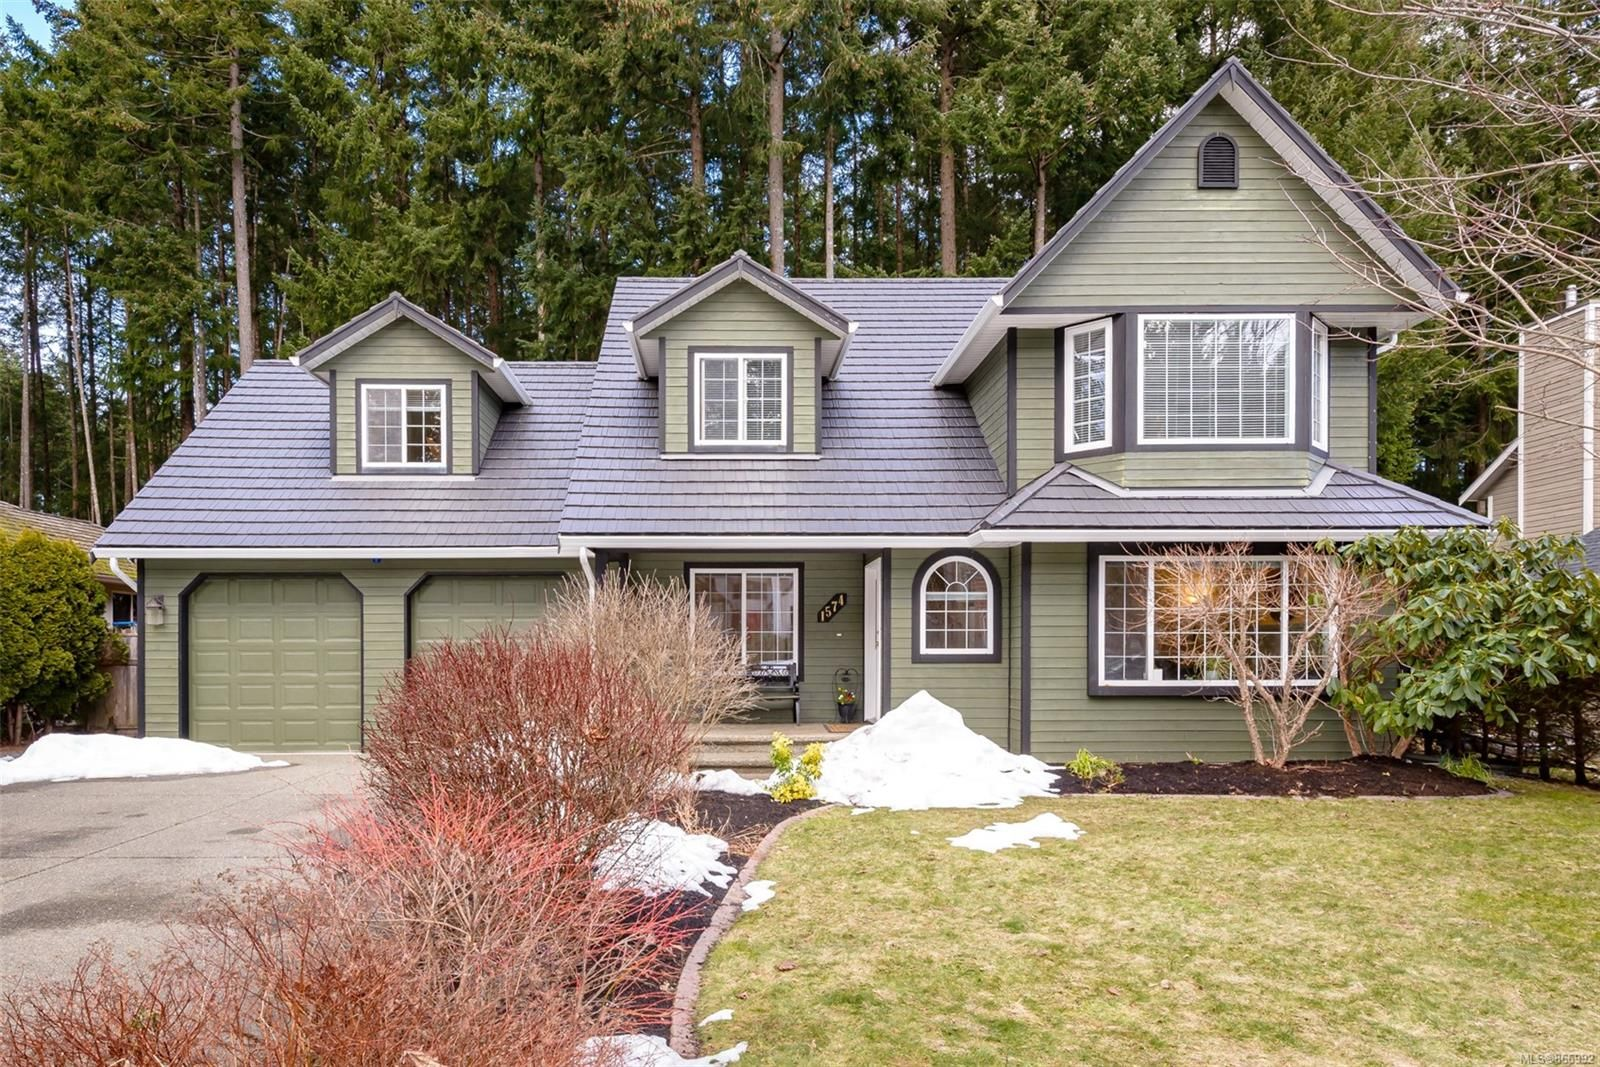 Main Photo: 1574 Mulberry Lane in : CV Comox (Town of) House for sale (Comox Valley)  : MLS®# 866992